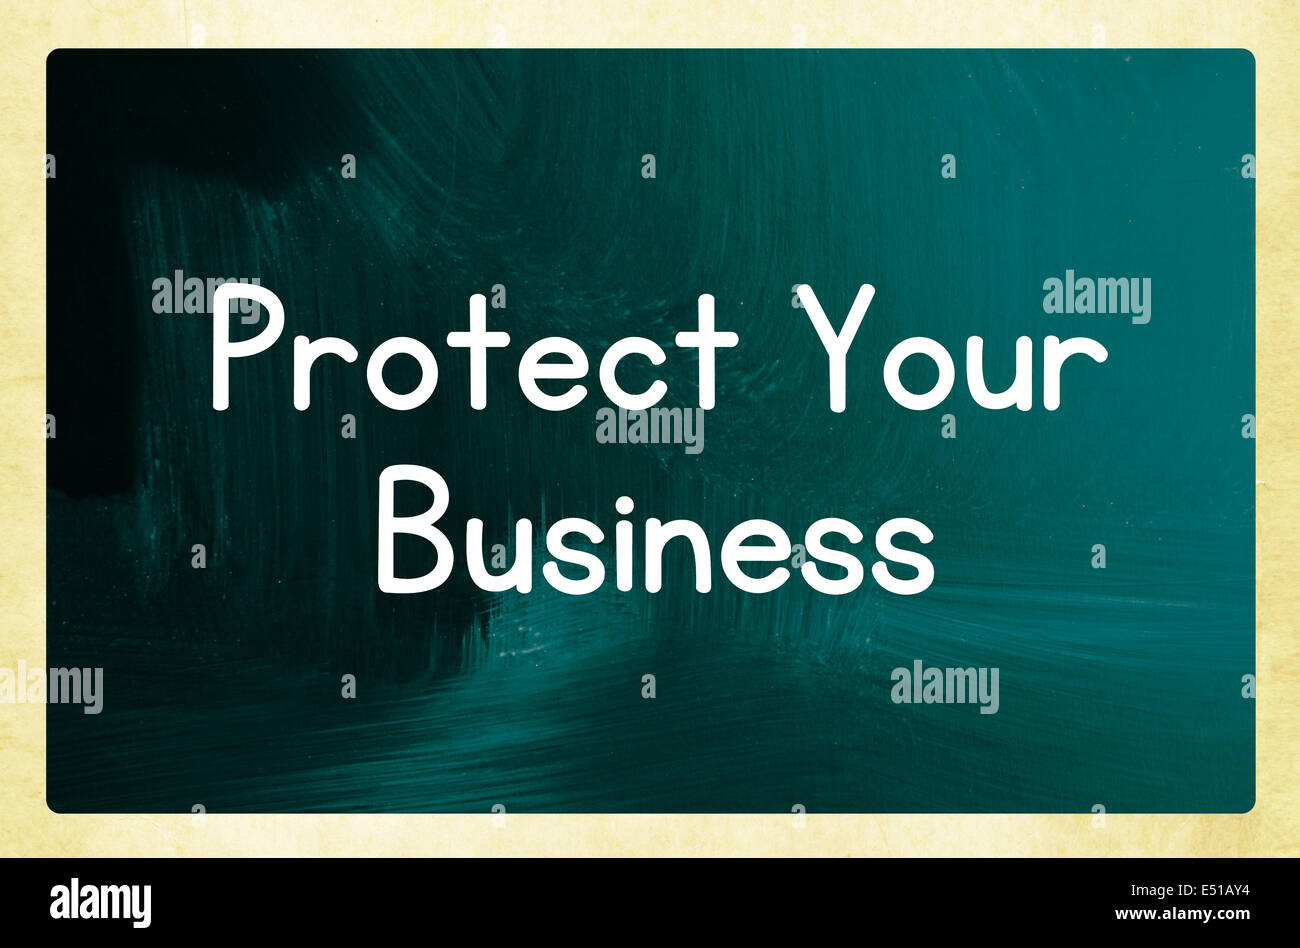 protect your business - Stock Image